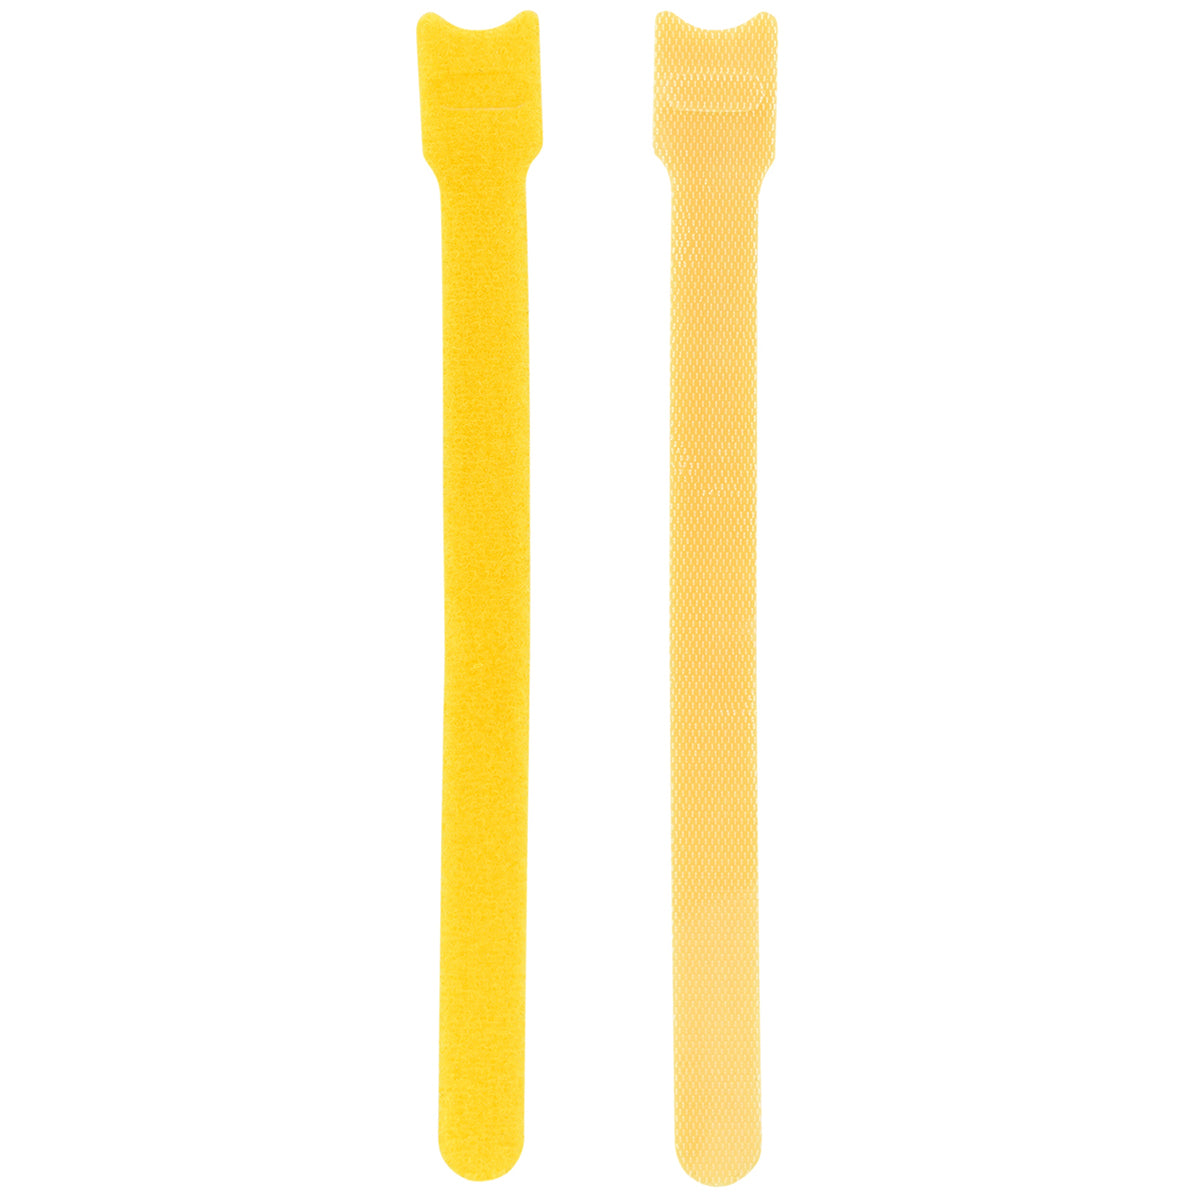 Displaying of two upright yellow nylon cable ties